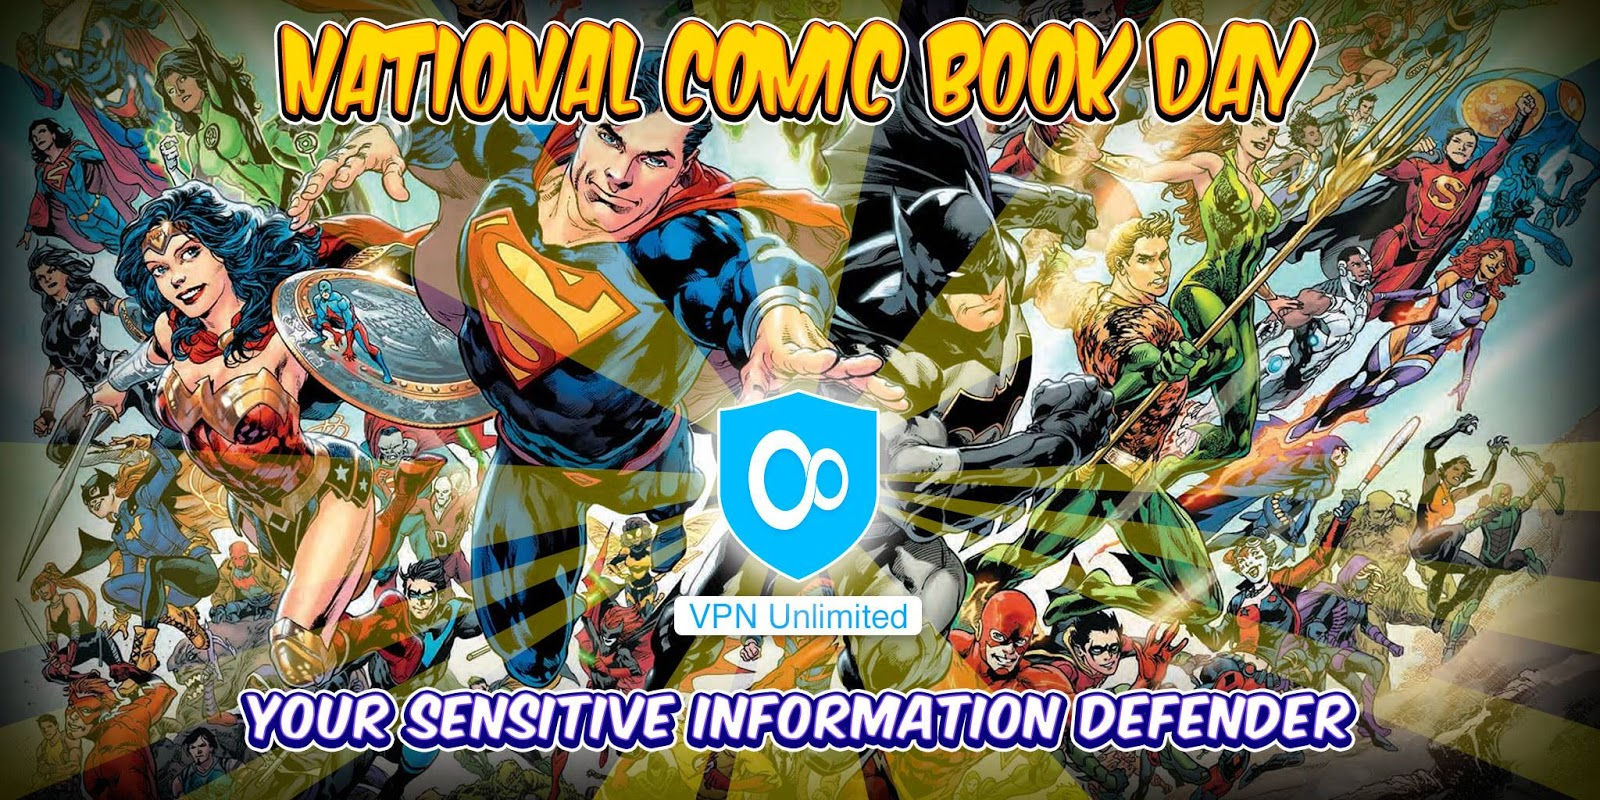 National Comic Book Day Wishes Unique Image